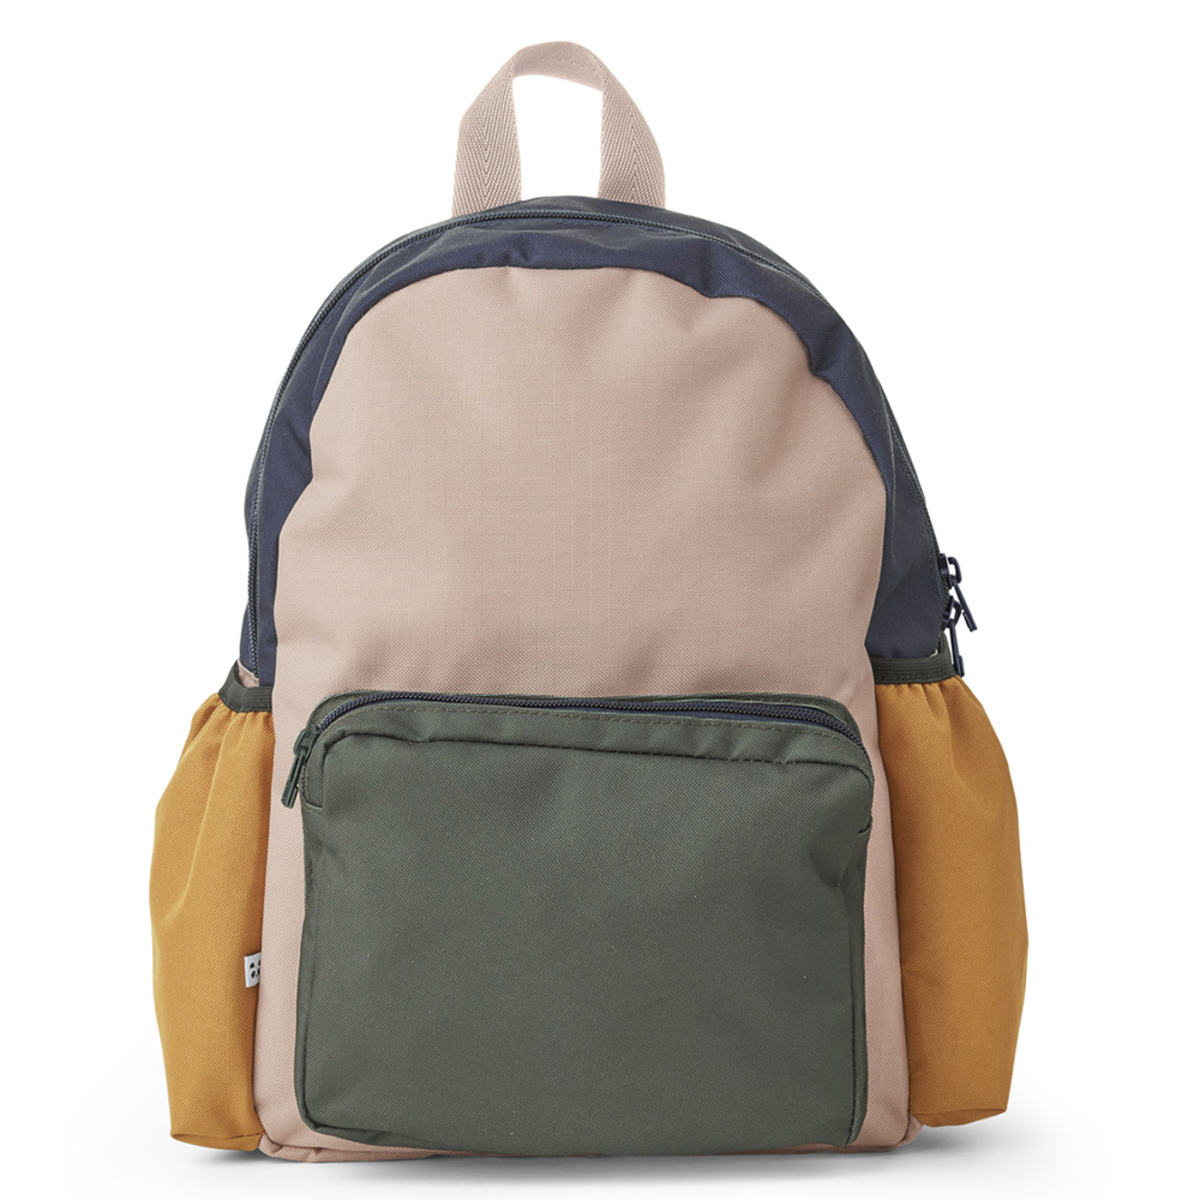 Bagagerie enfant Sac à Dos Wally - Rose Multi Mix Sac à Dos Wally - Rose Multi Mix